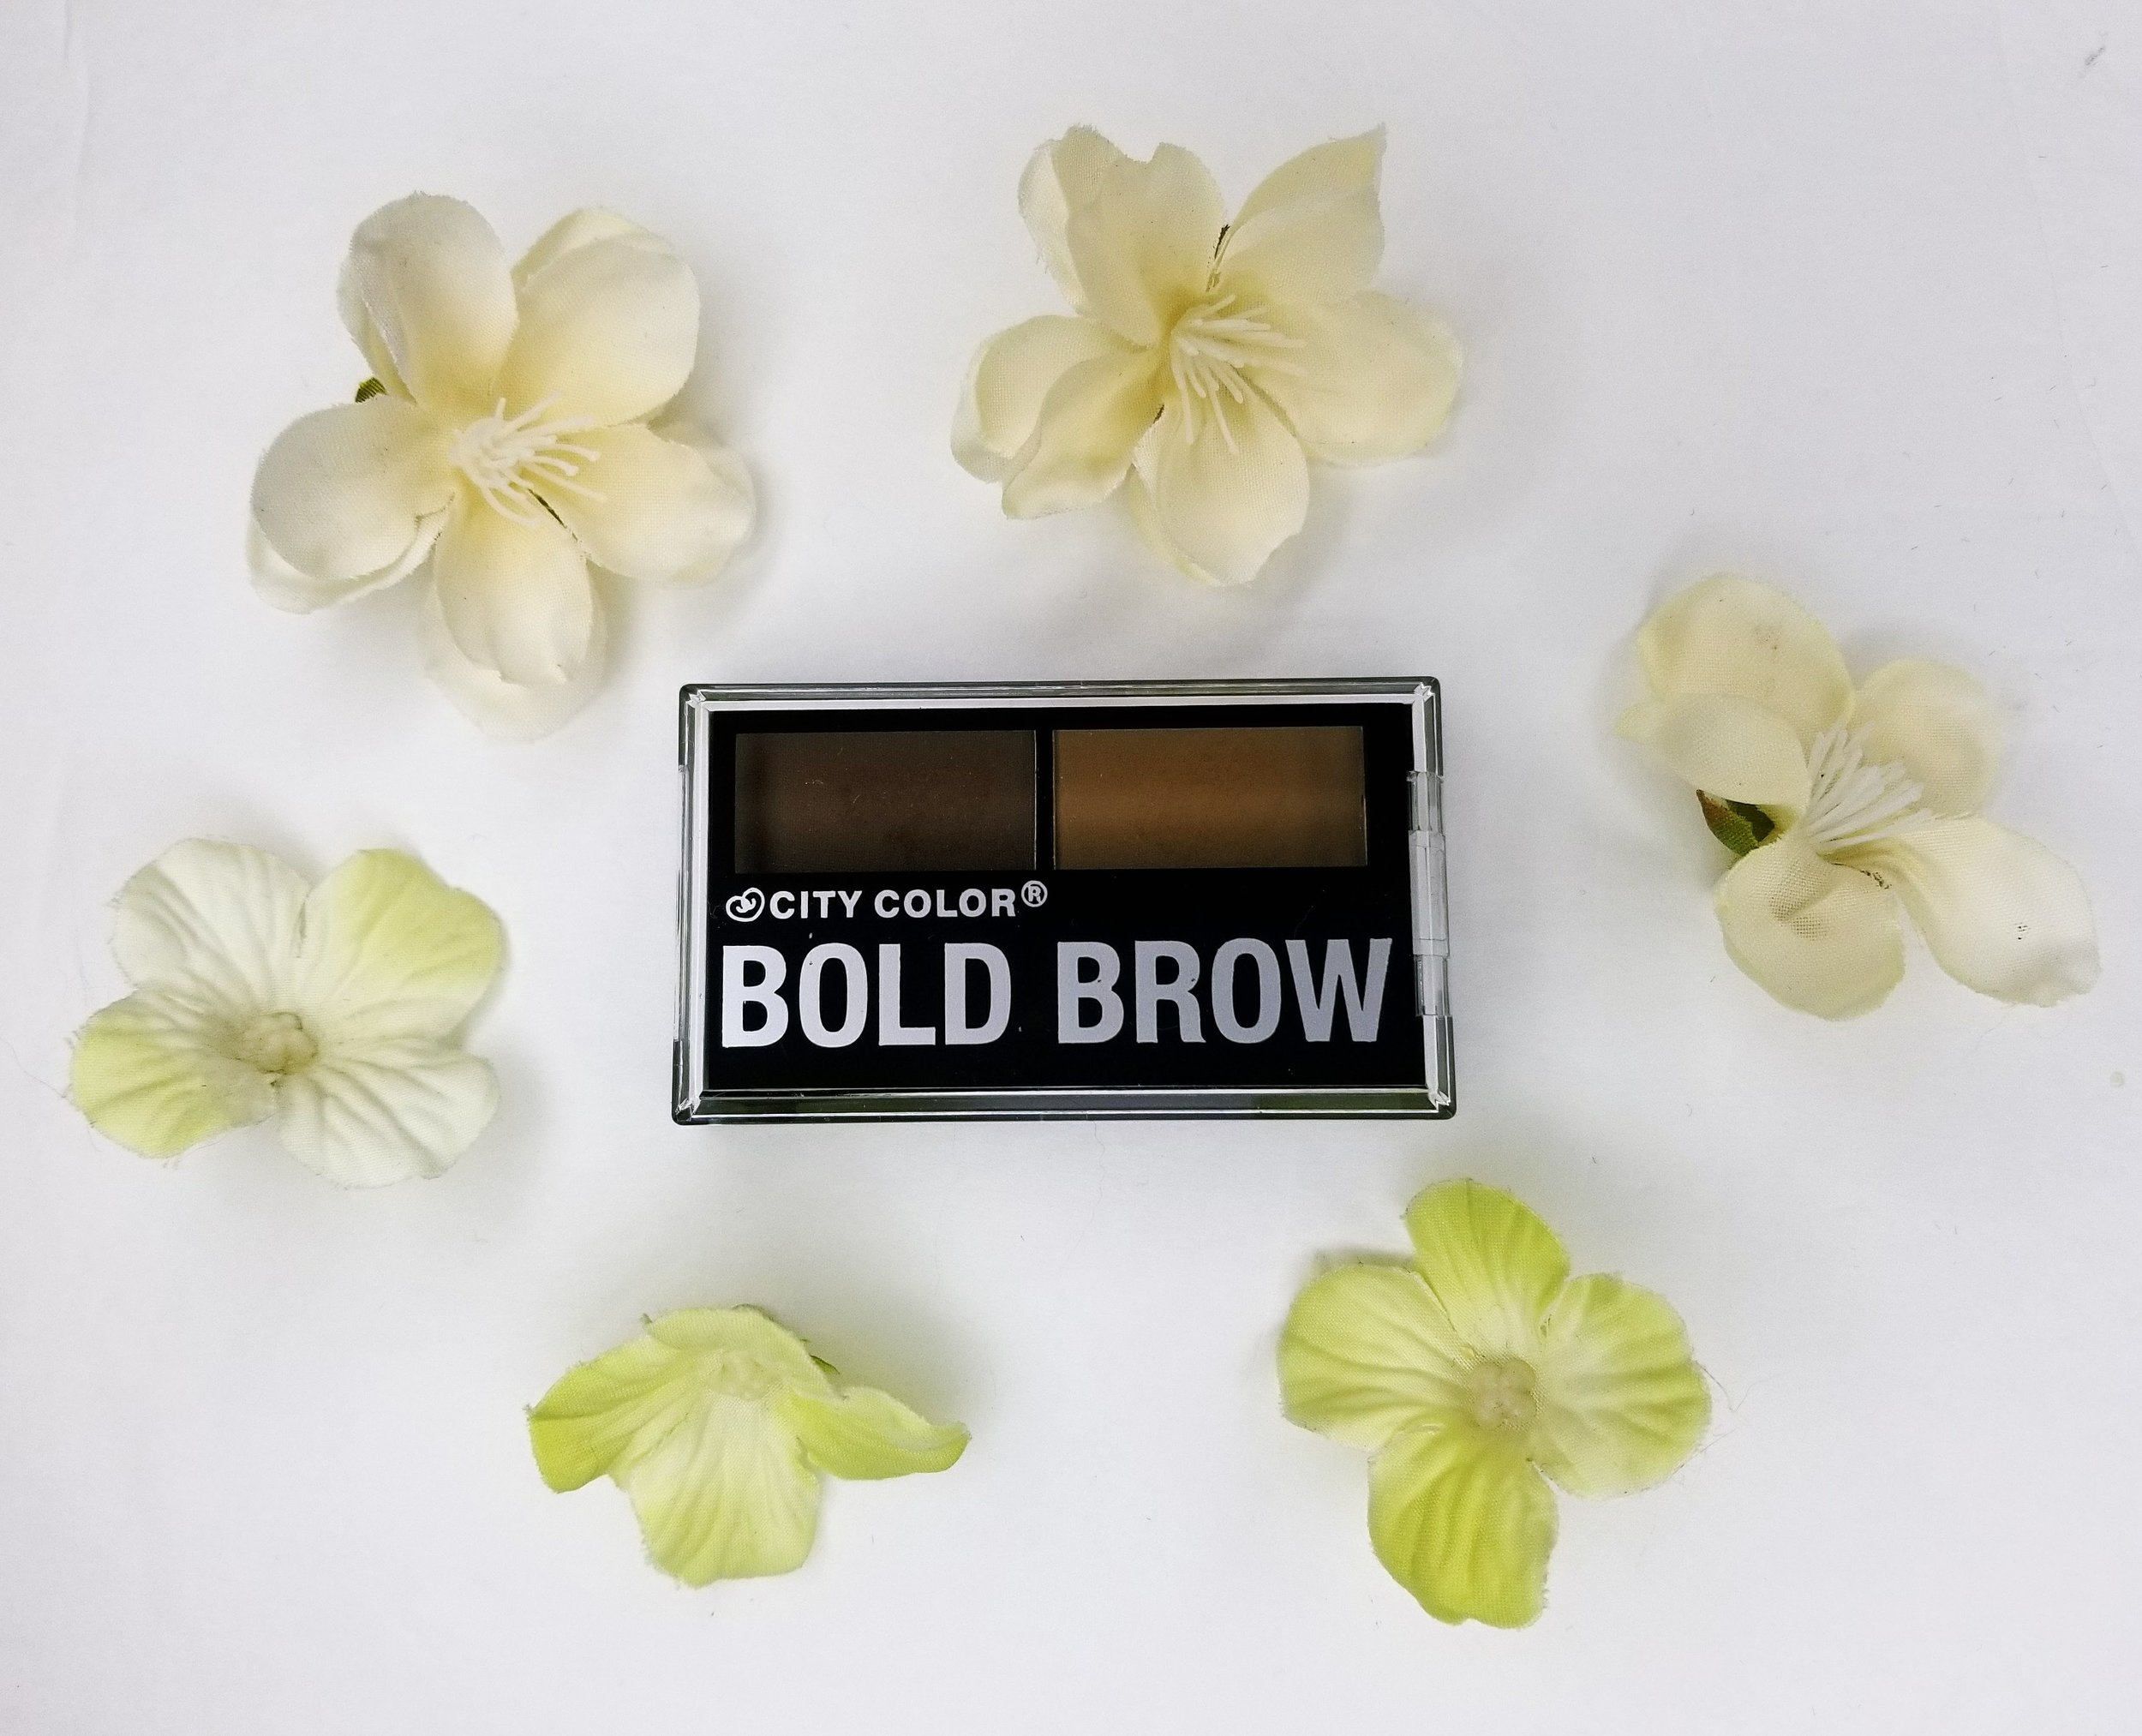 A photo of City Color brow powders.